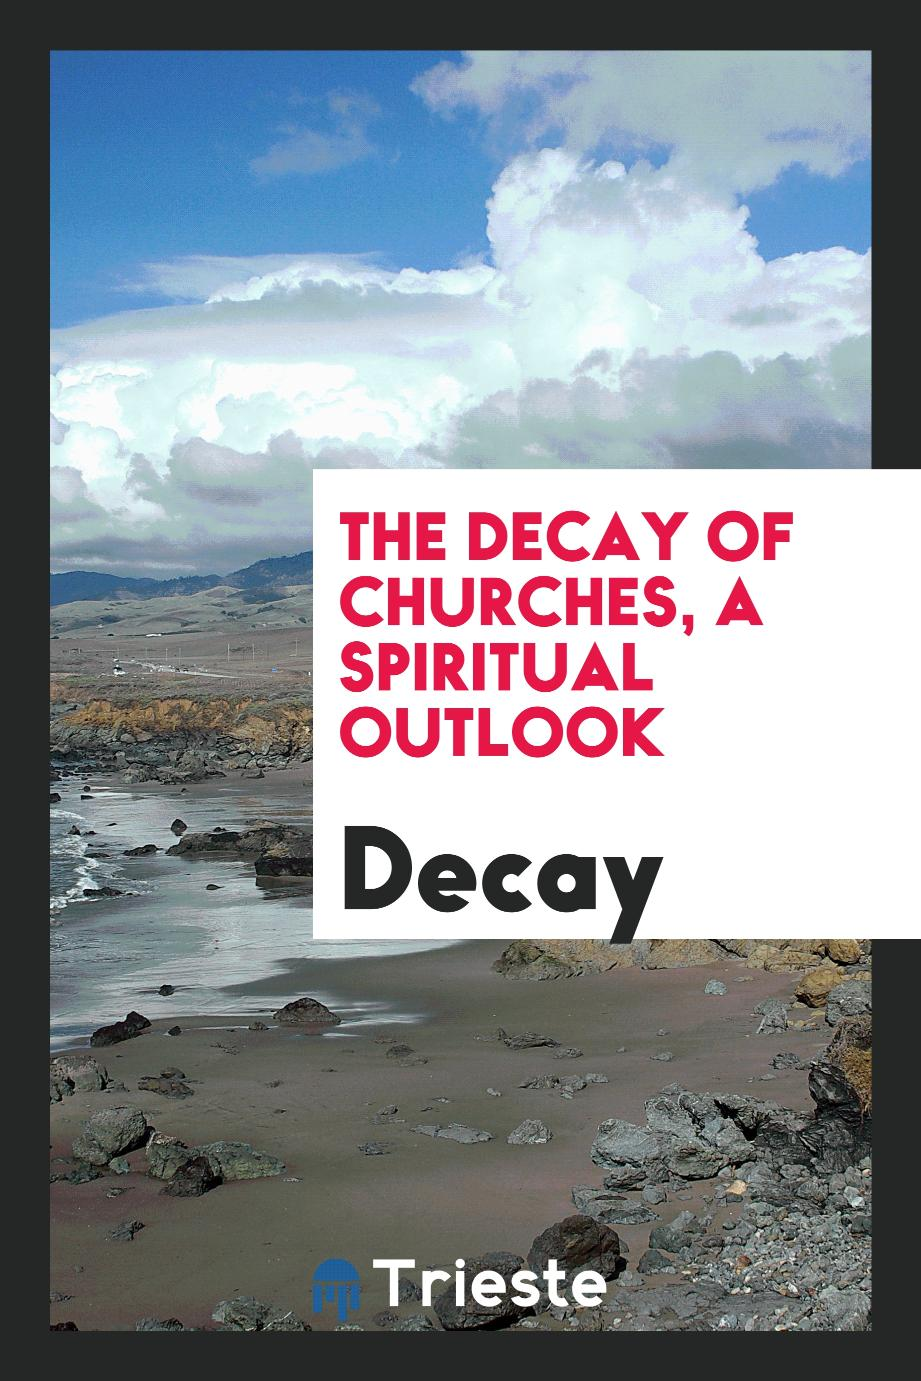 The Decay of Churches, a Spiritual Outlook